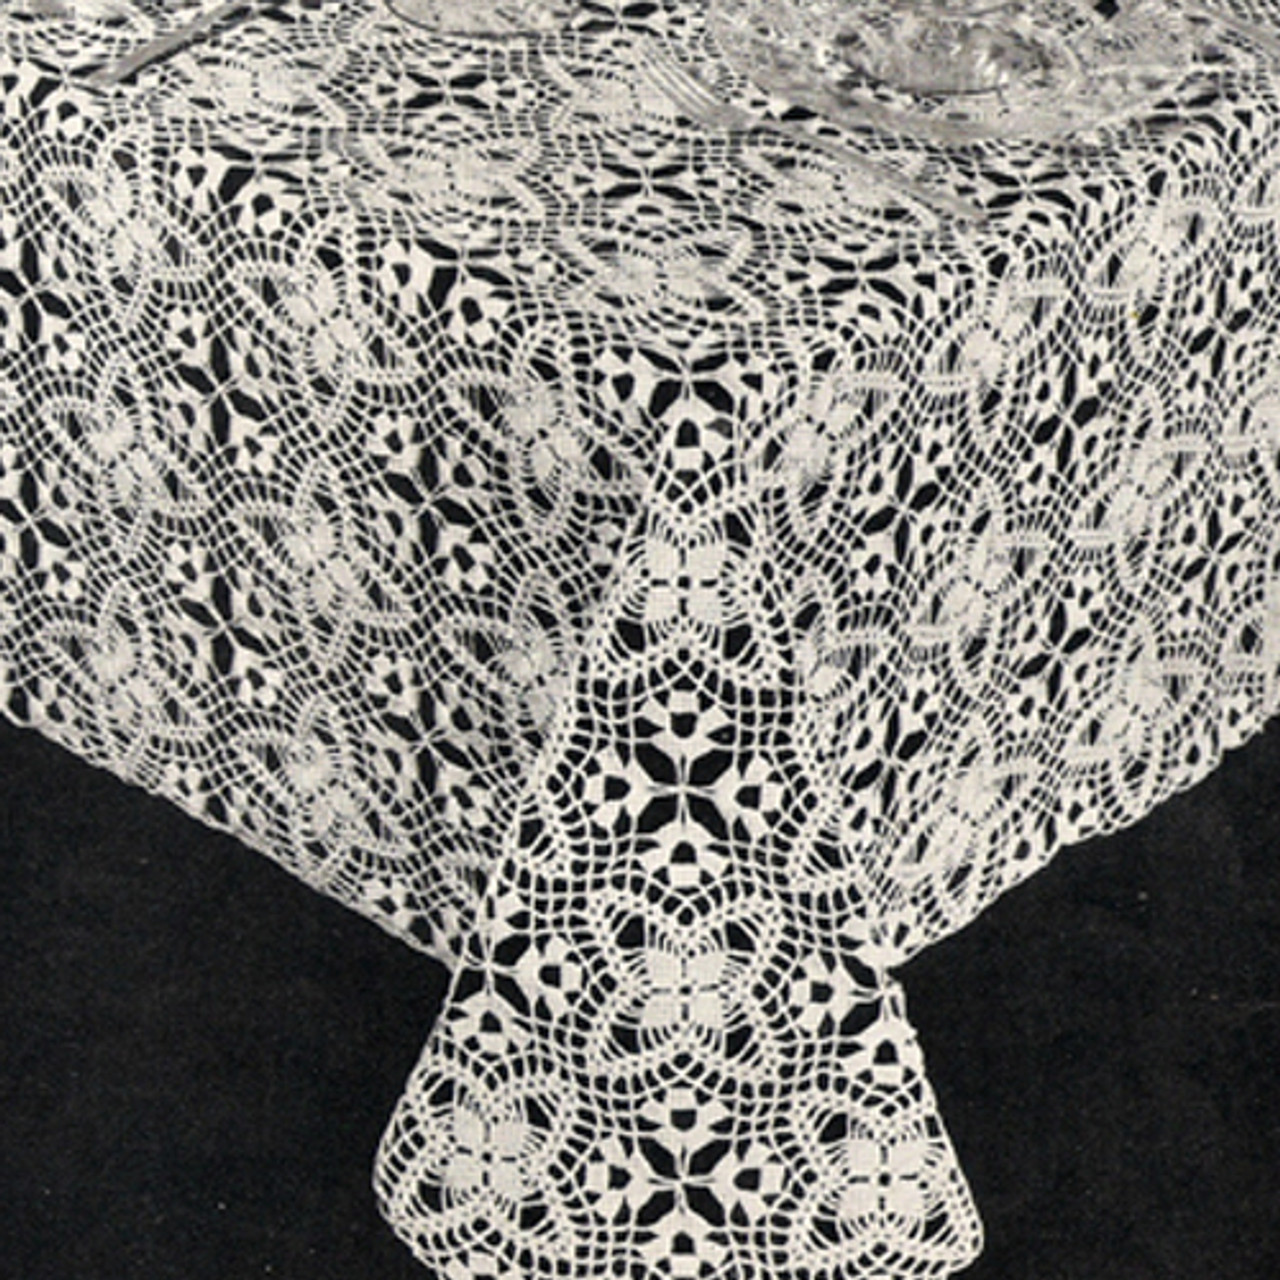 Crocheted Tablecloth Pattern, Lady Bountiful Medallions